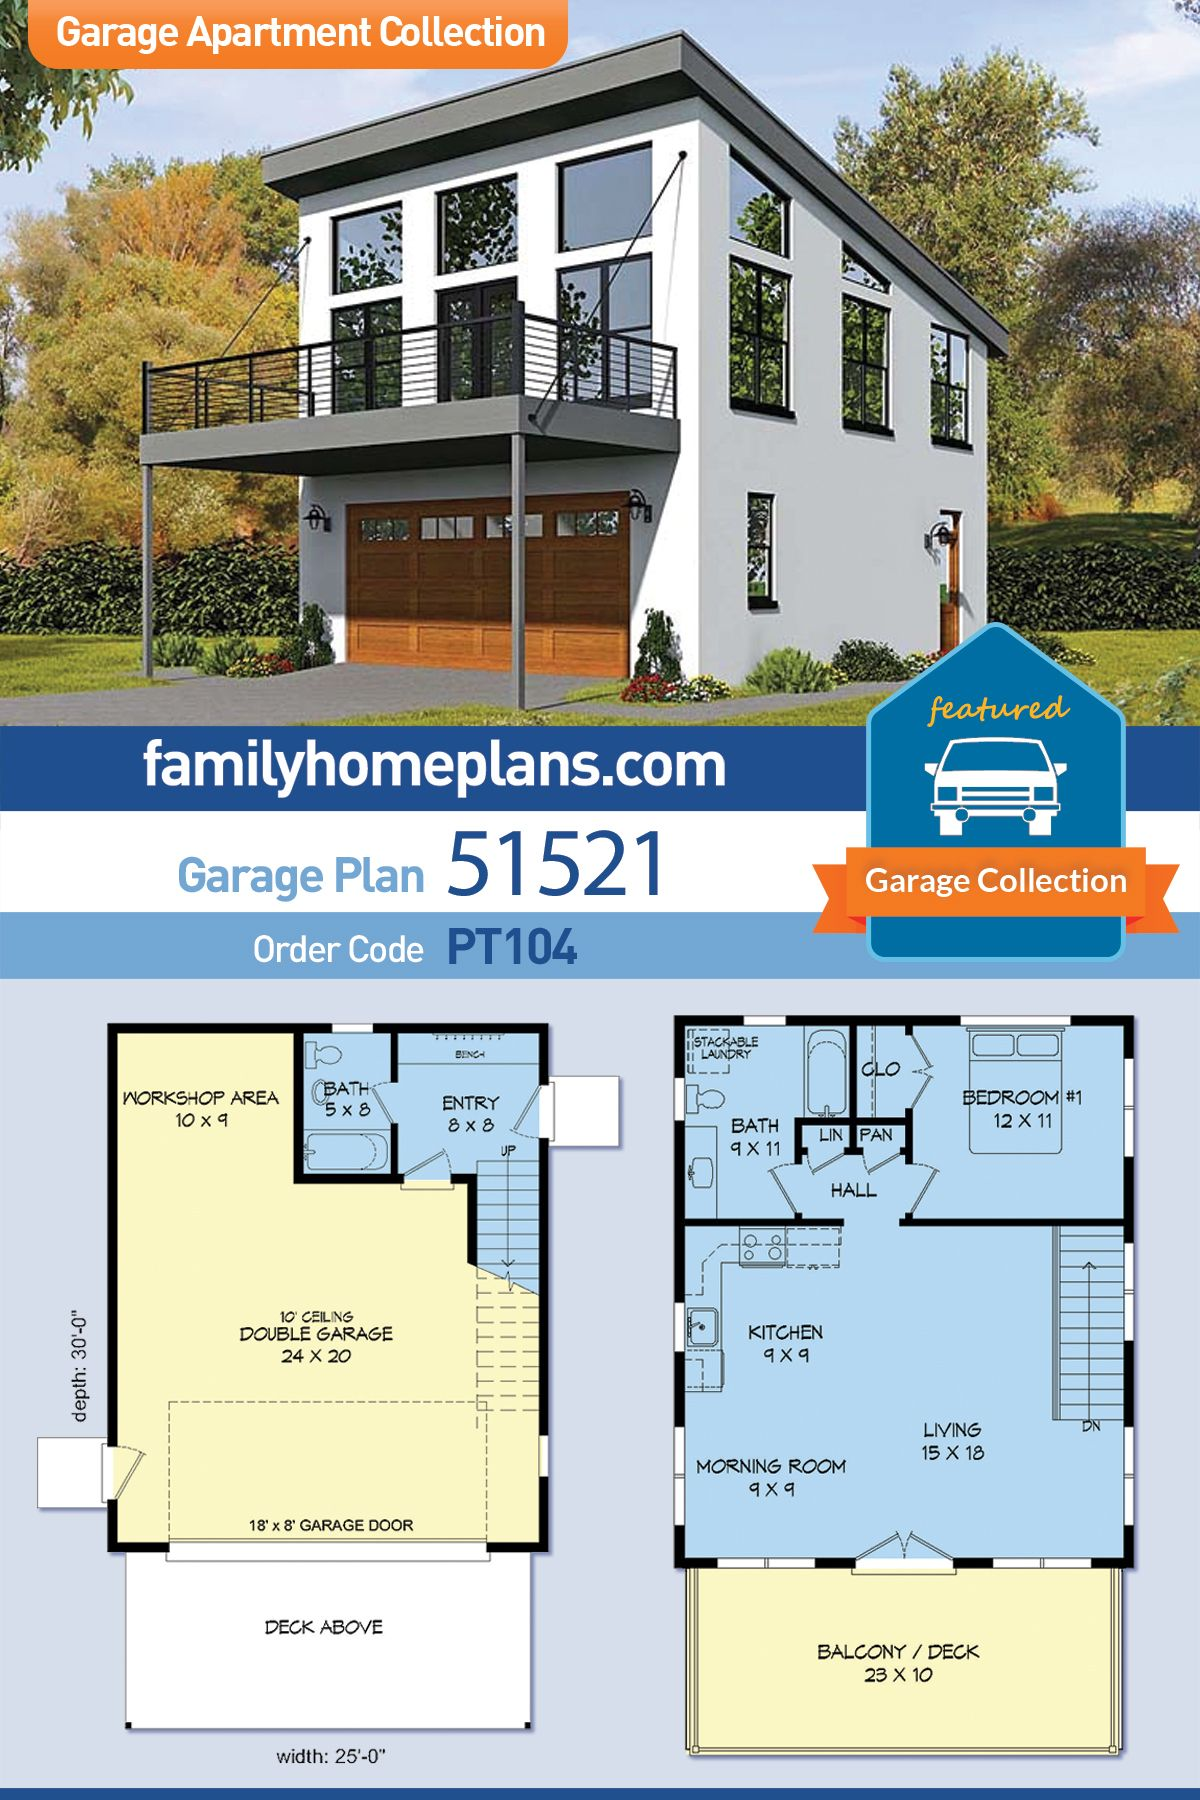 Modern Style 2 Car Garage Apartment Plan Number 51521 With 1 Bed 2 Bath Carriage House Plans Garage Plans With Loft Garage Apartment Plan